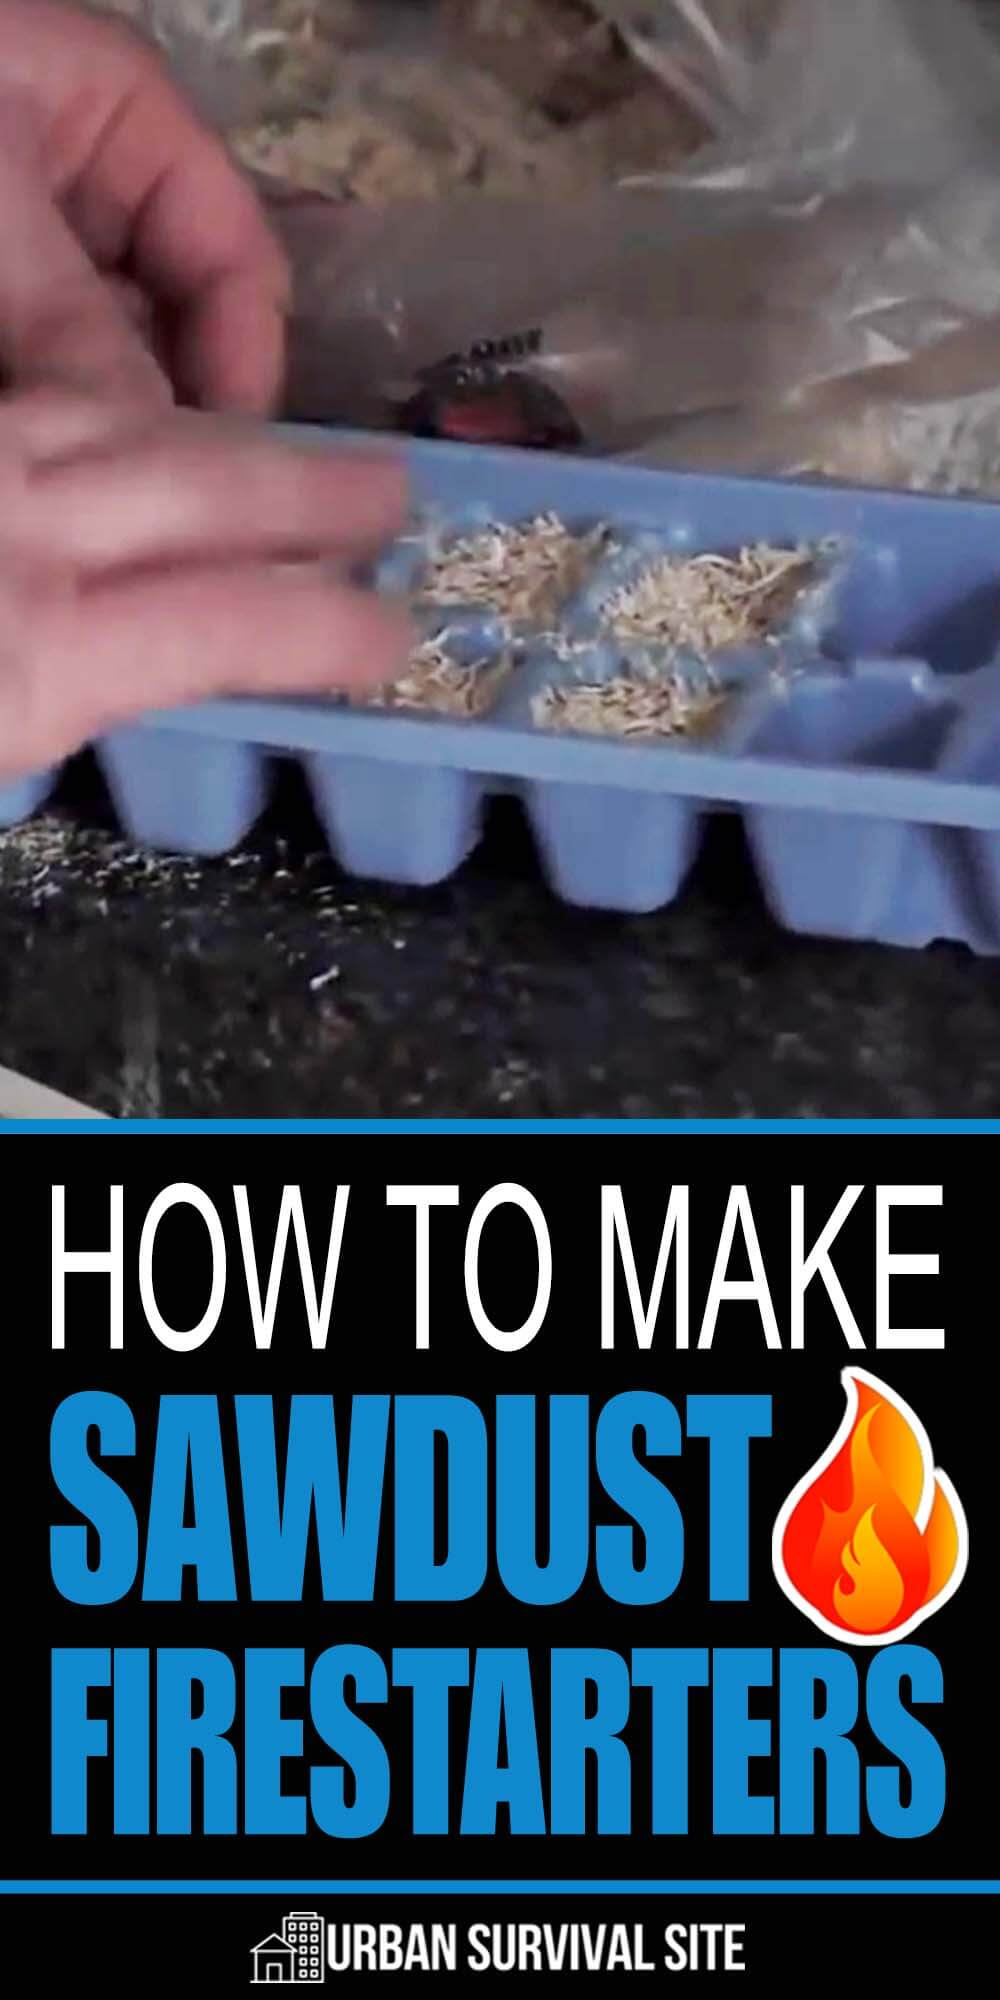 How To Make Sawdust Firestarters